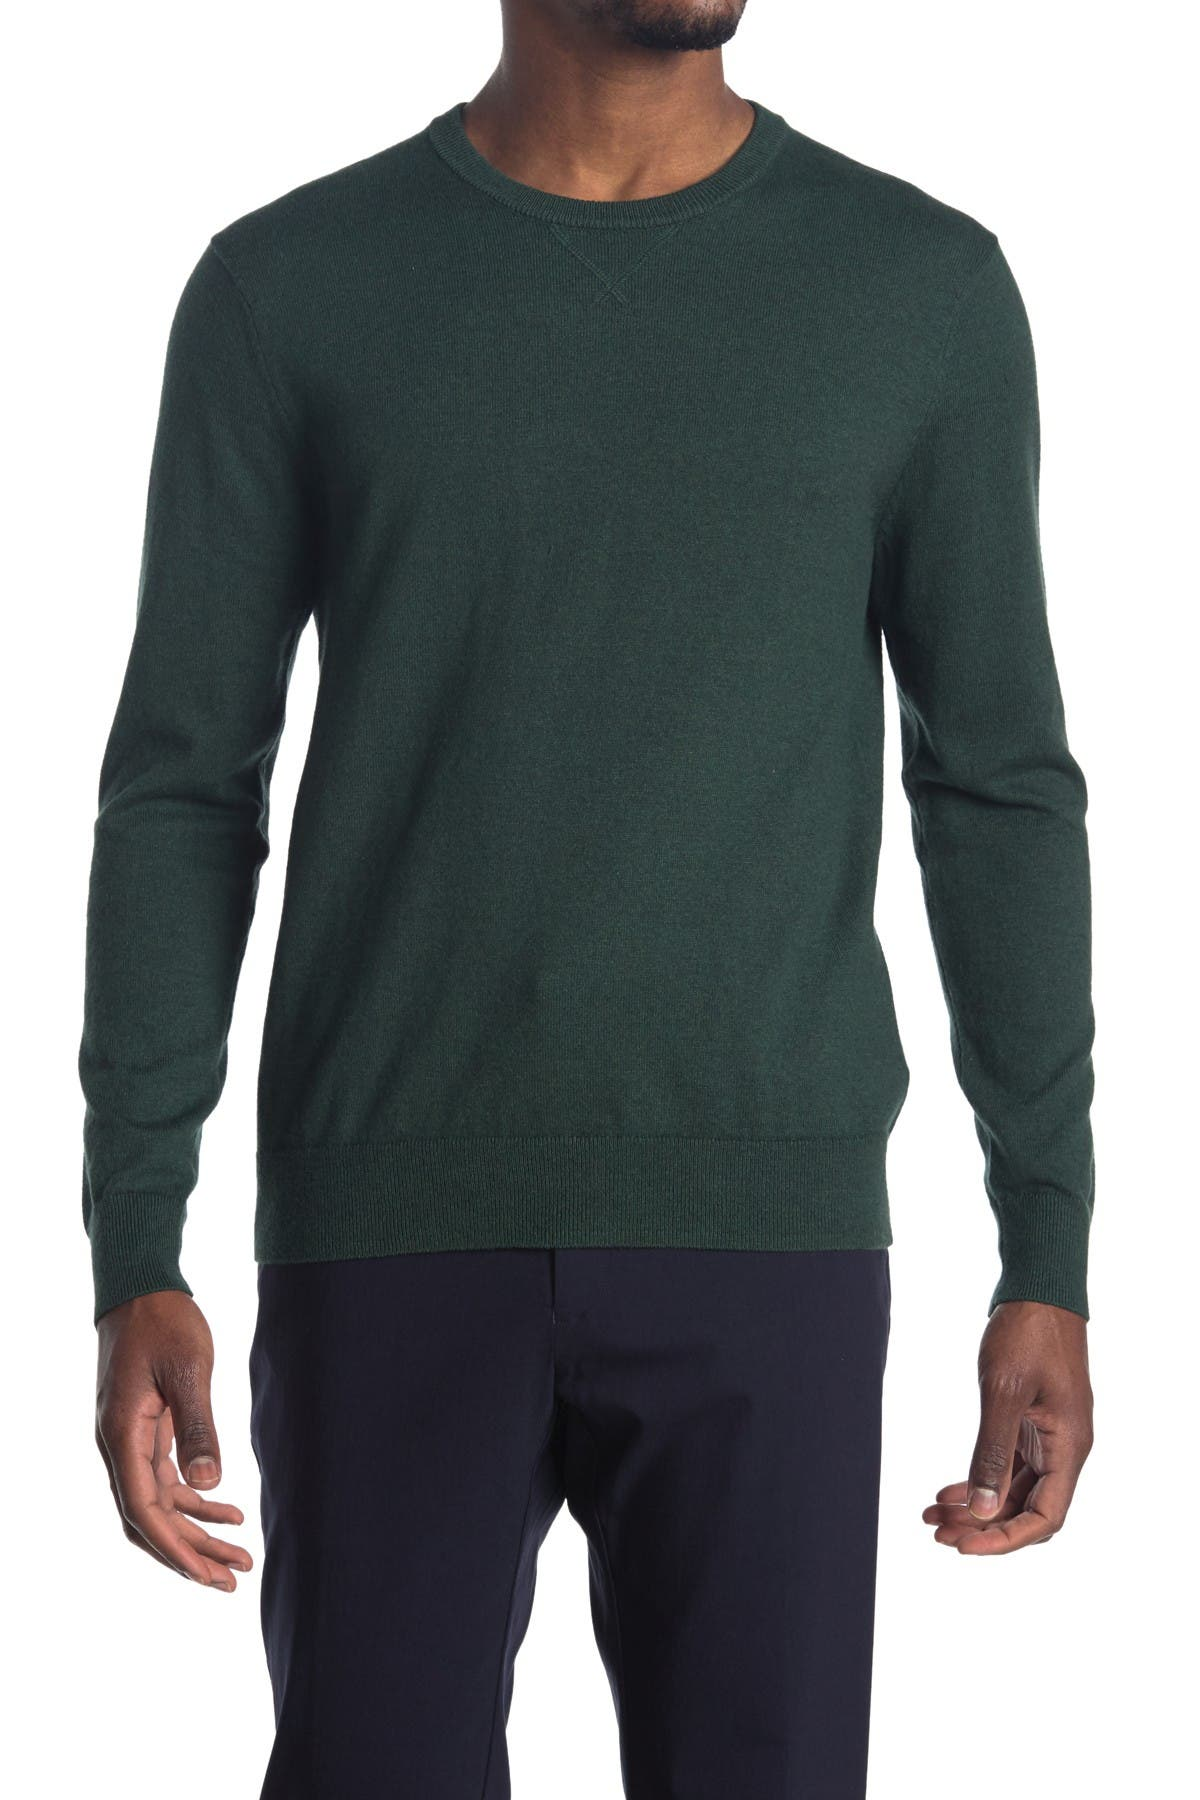 Image of WALLIN & BROS Classic Crew Neck Sweater